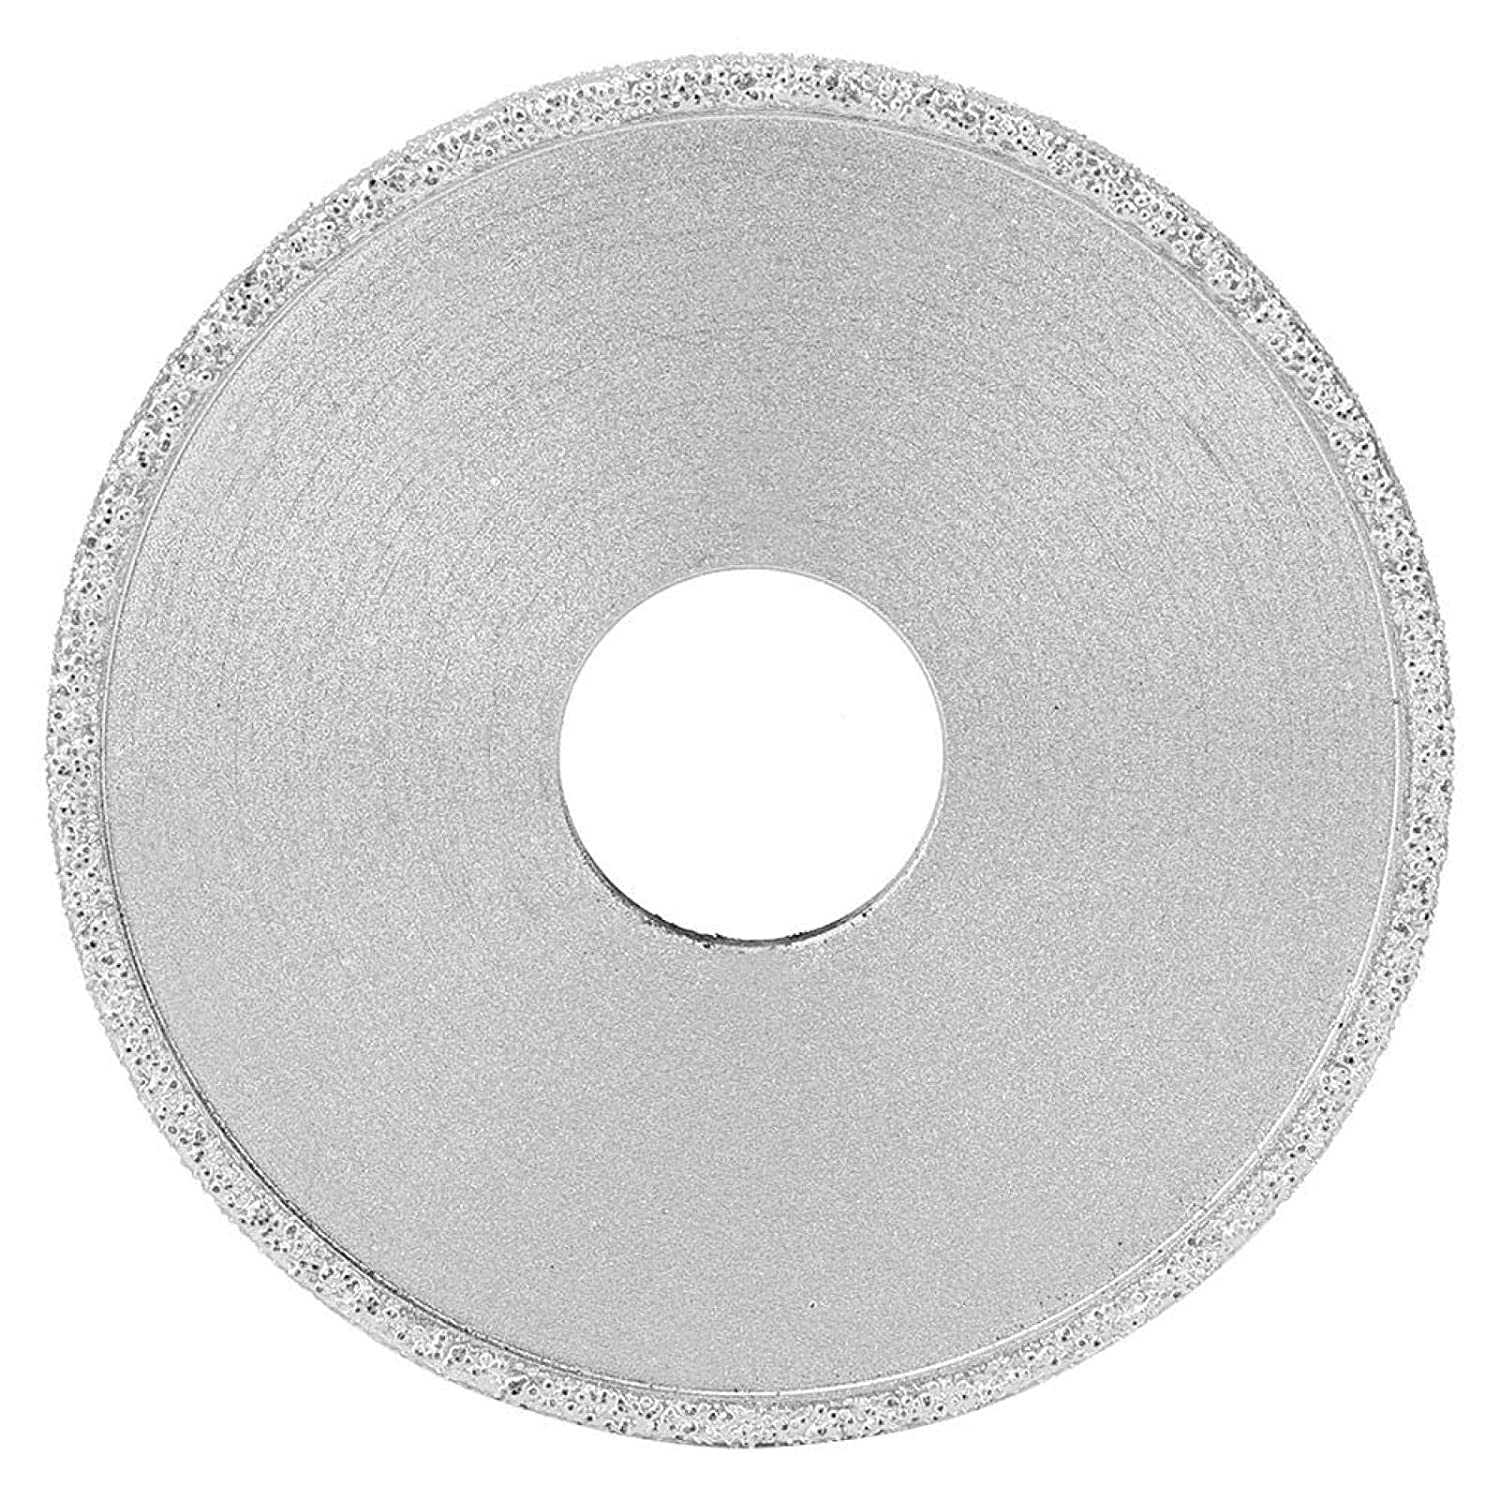 Factory outlet Brazed National products Diamond Grinding Wheel Whee 7.3cm